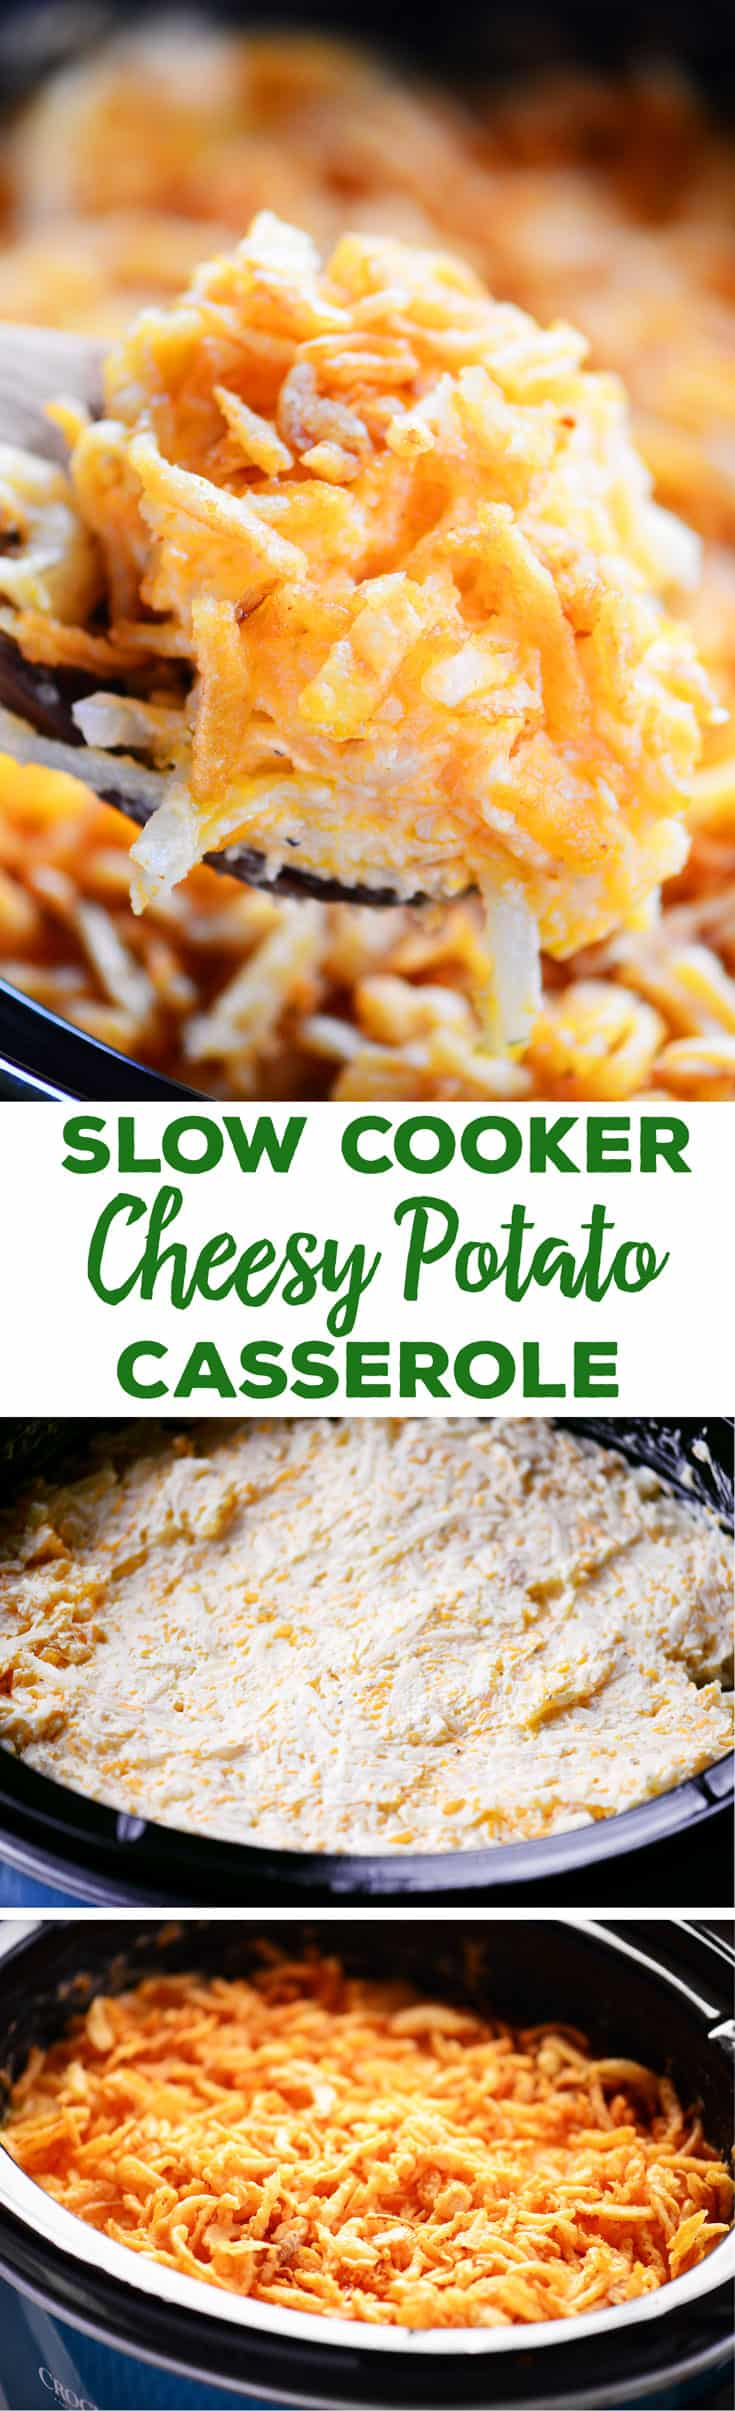 Slow Cooker Cheesy Potato Casserole is the ultimate comfort food and the best side dish for holiday parties and potlucks. Topped with French fried onions for more flavor! #slowcookerrecipes #potluck